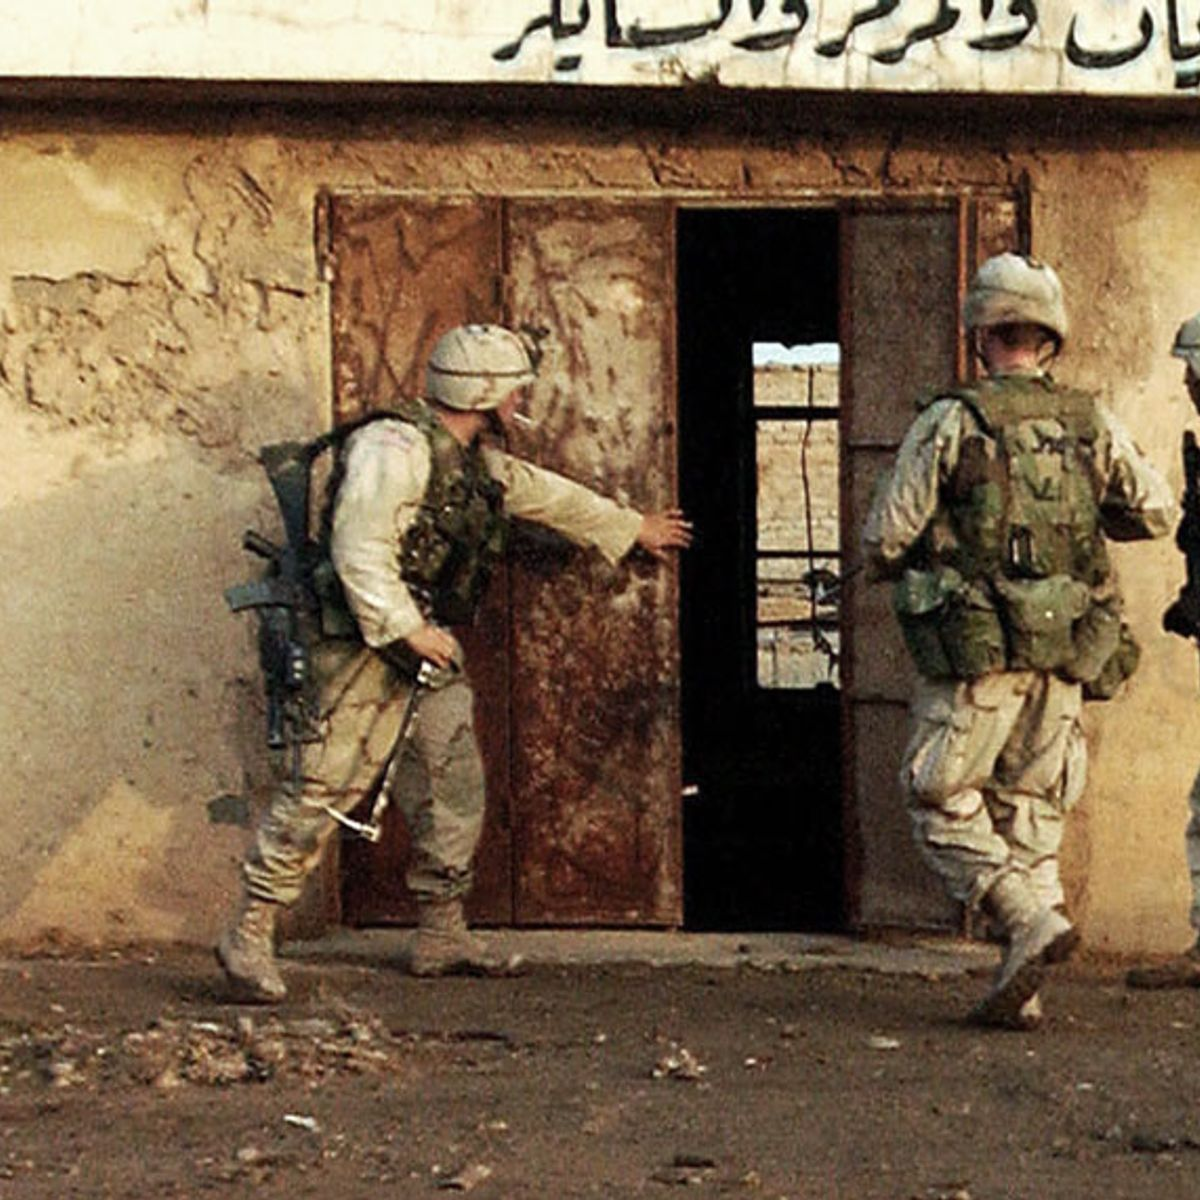 """""""I know where Saddam Hussein is hiding"""": What I saw in Iraq right after the 2003 U.S. invasion"""